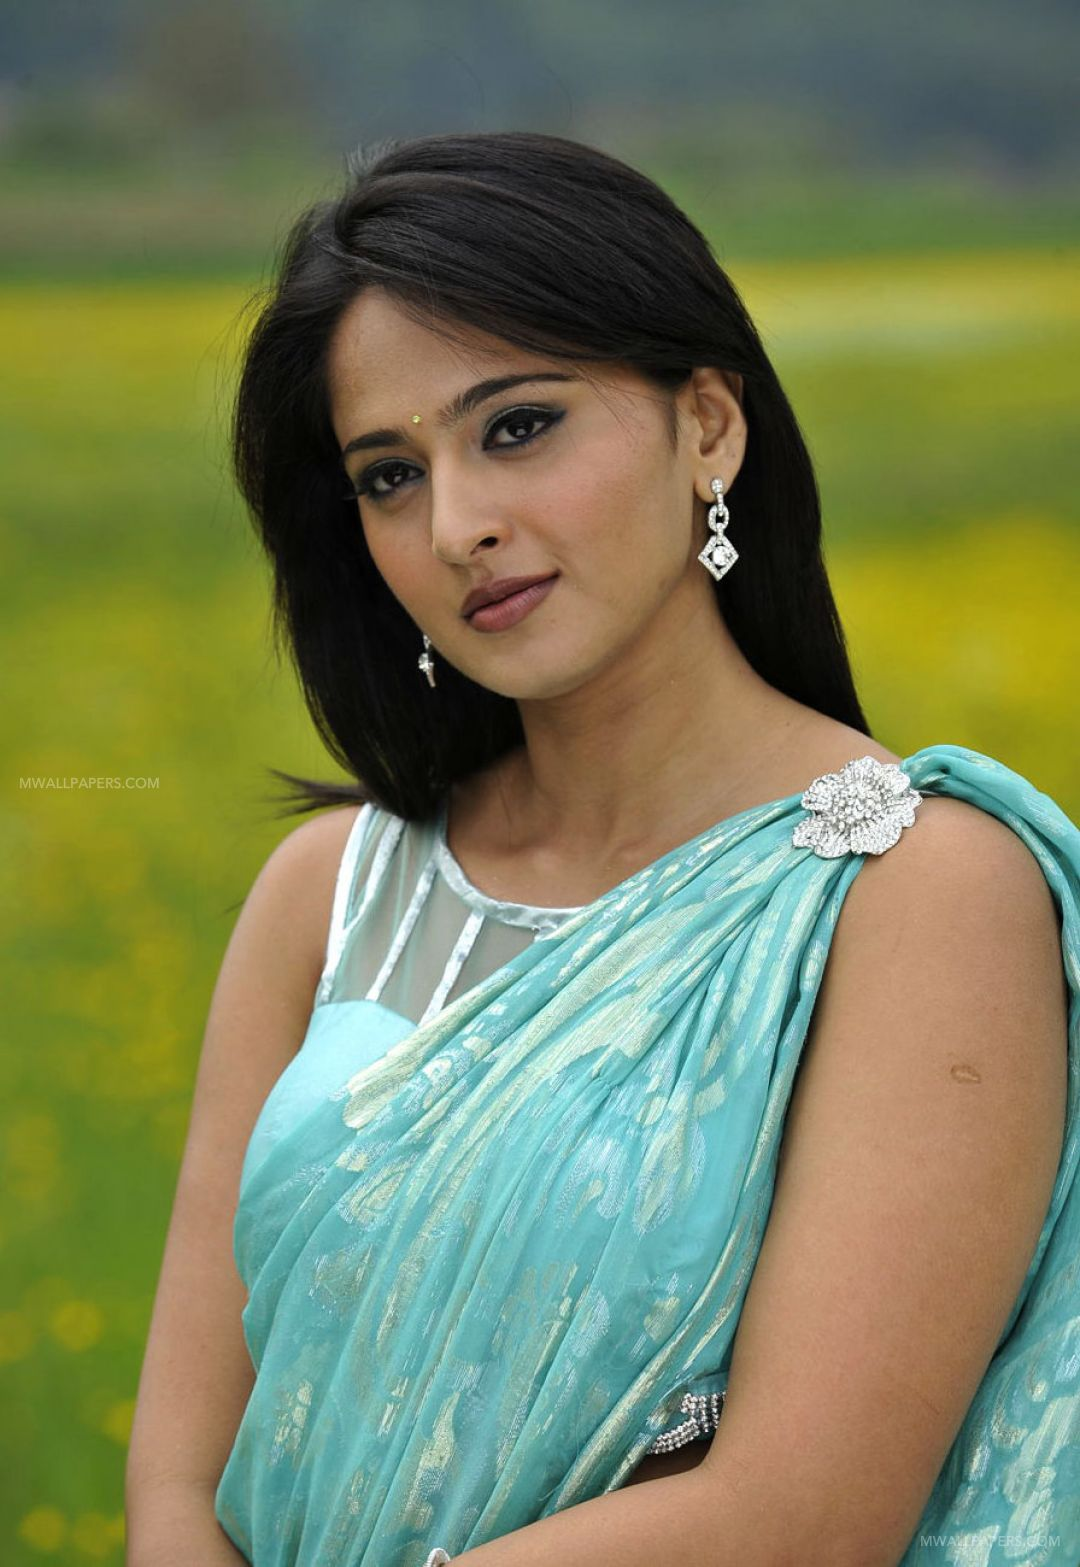 Anushka Shetty HD Wallpapers (Desktop Background / Android / iPhone) (1080p, 4k) (38517) - Anushka Shetty